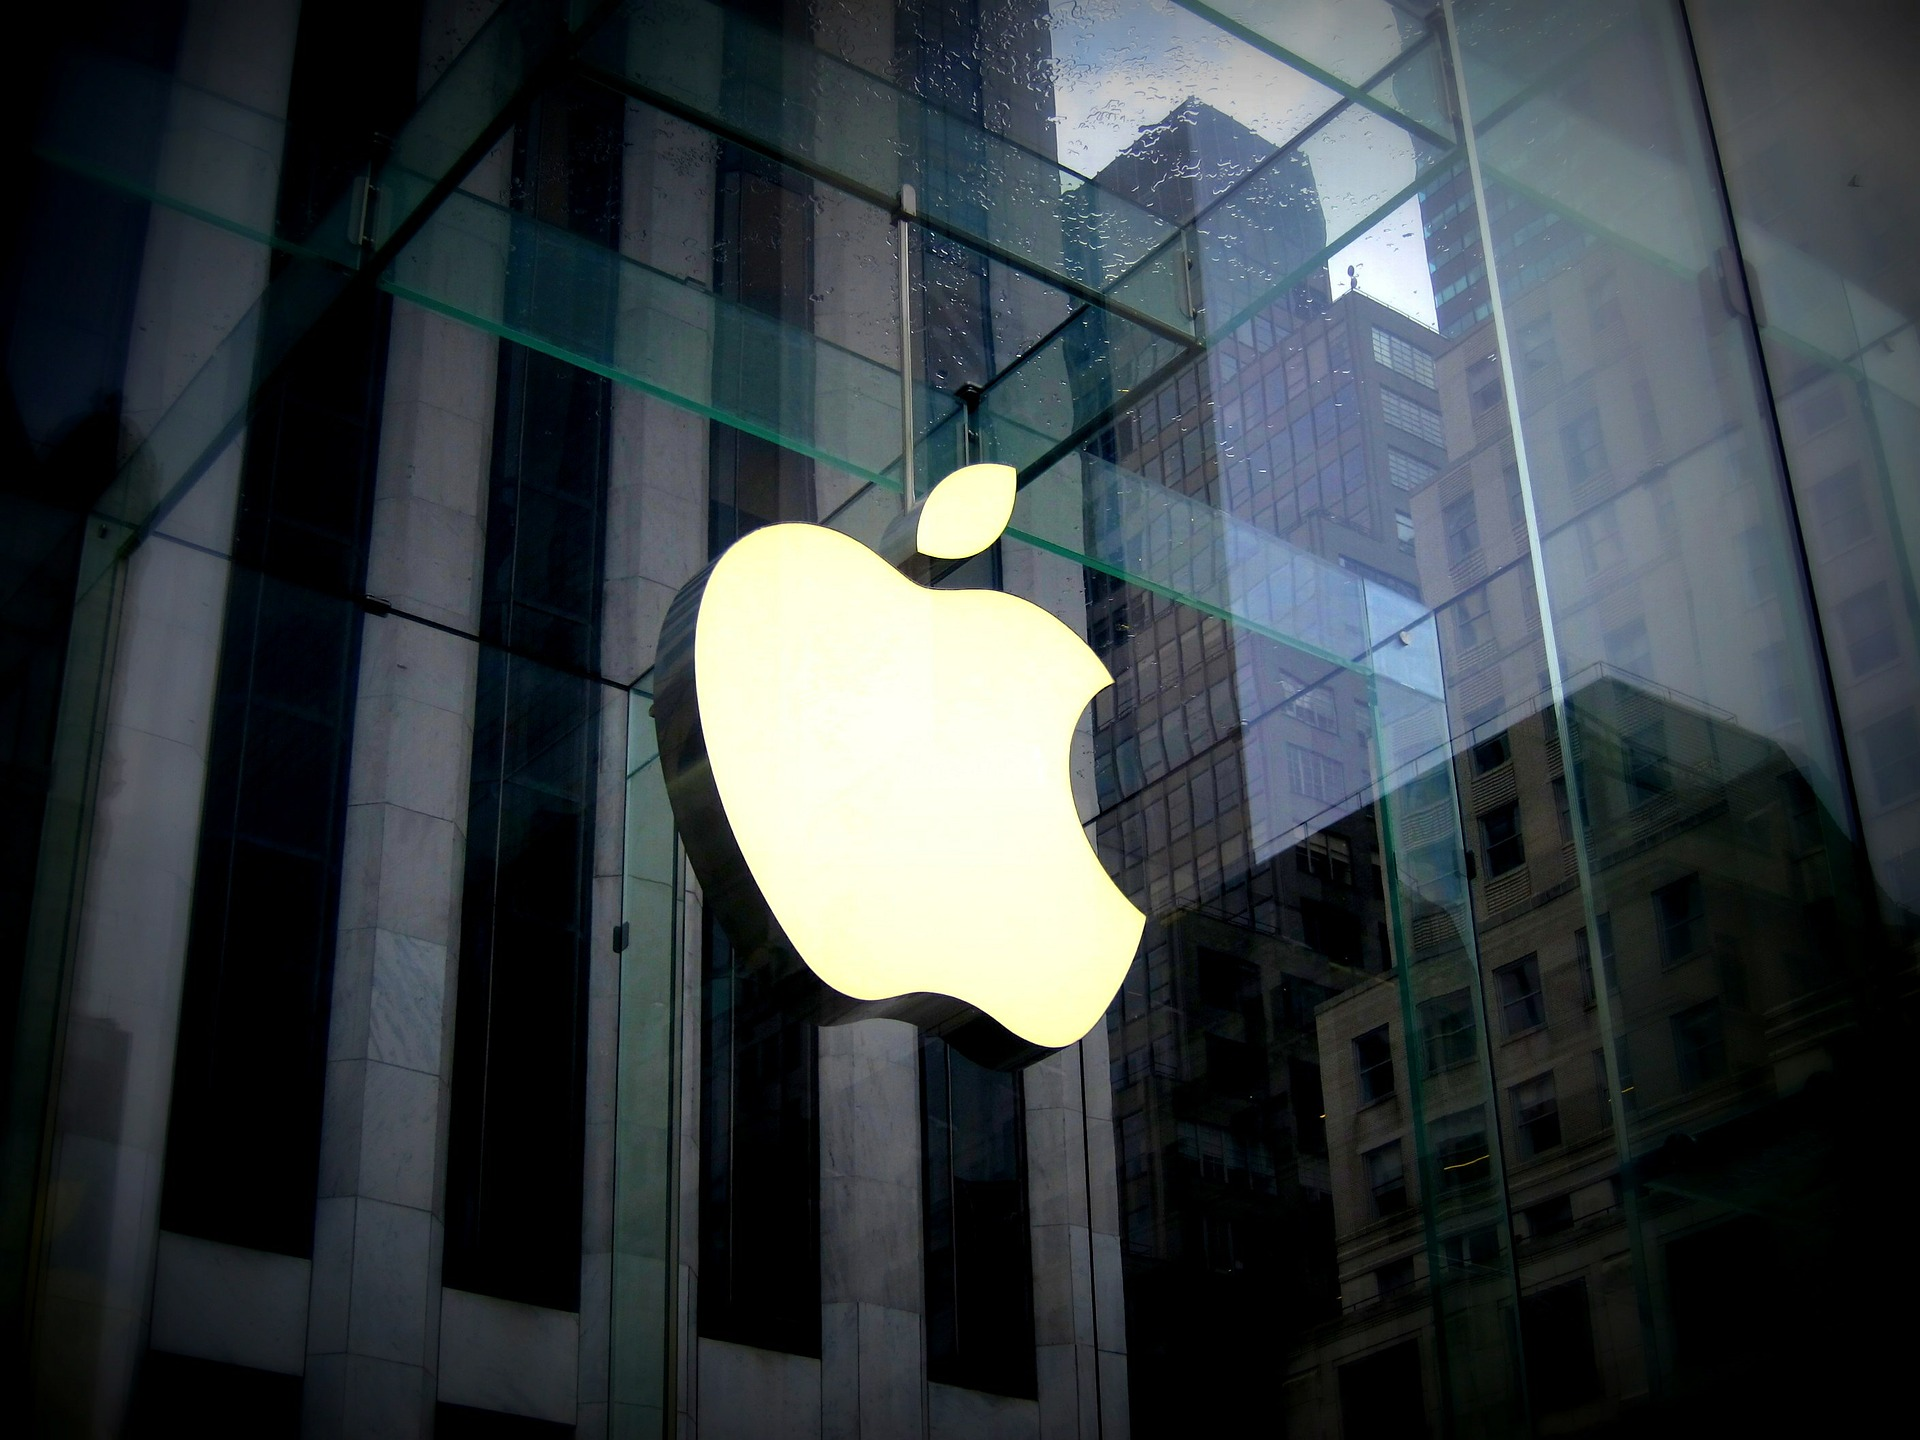 Apple Inc. is credible among its publics and is able to communicate successfully using translucency. (Photo courtesy of Matias Cruz, Pixabay)